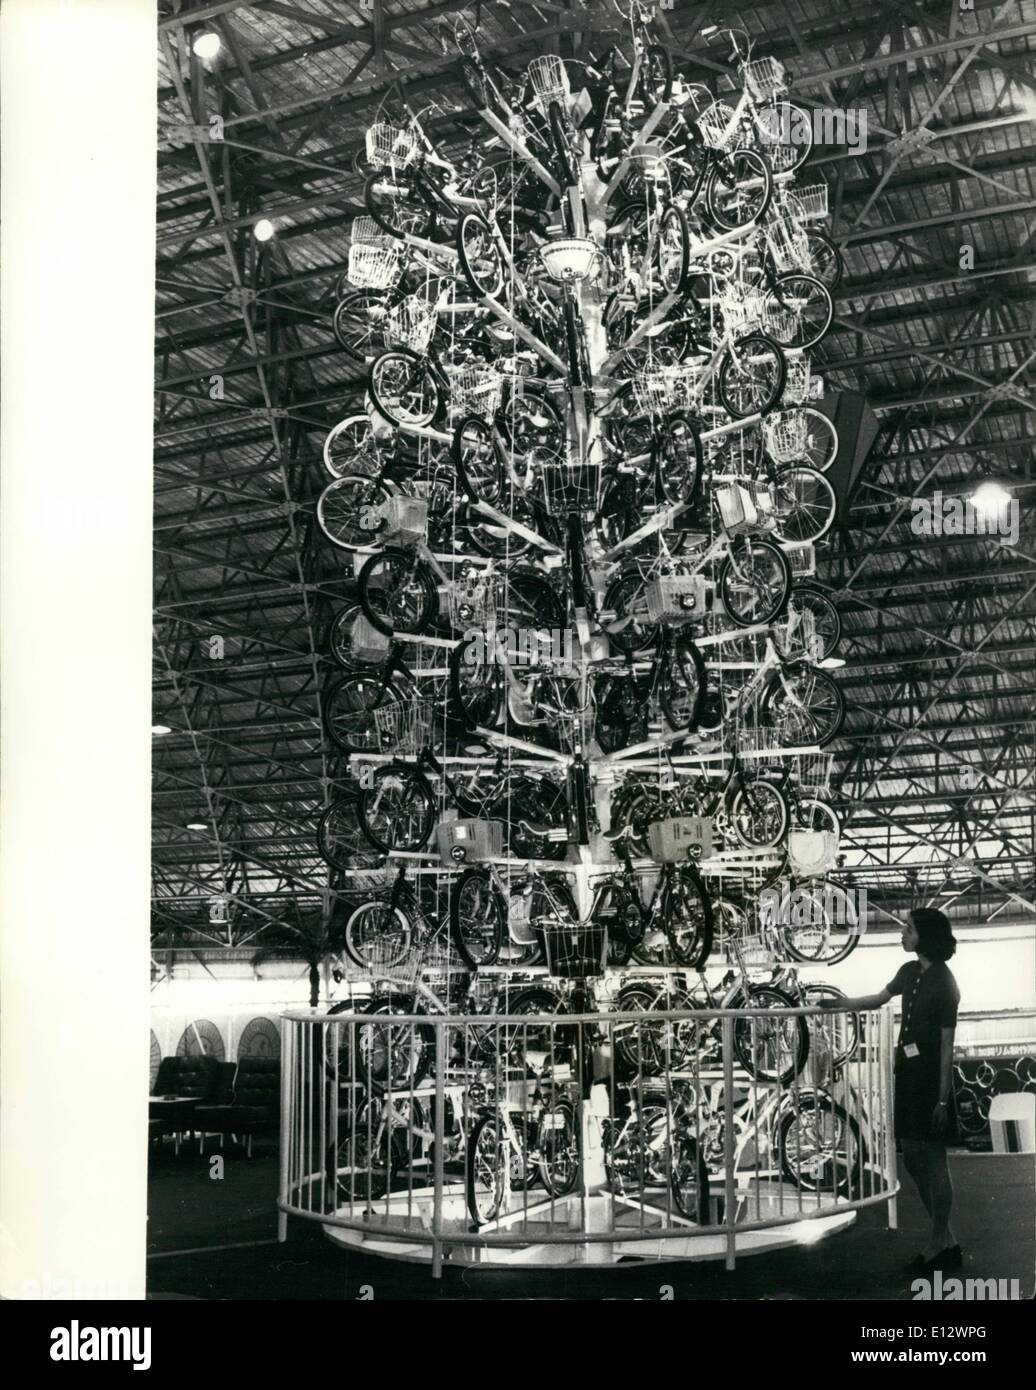 Feb. 26, 2012 - Bicycle ''Tree'' in Tokyo: Japanese-made bicycles are formed into the shape of a tree at the 9th International Trade Fair currently in progress in Tokyo. The Bicycles will be given away as prizes when the Fair closes. - Stock Image